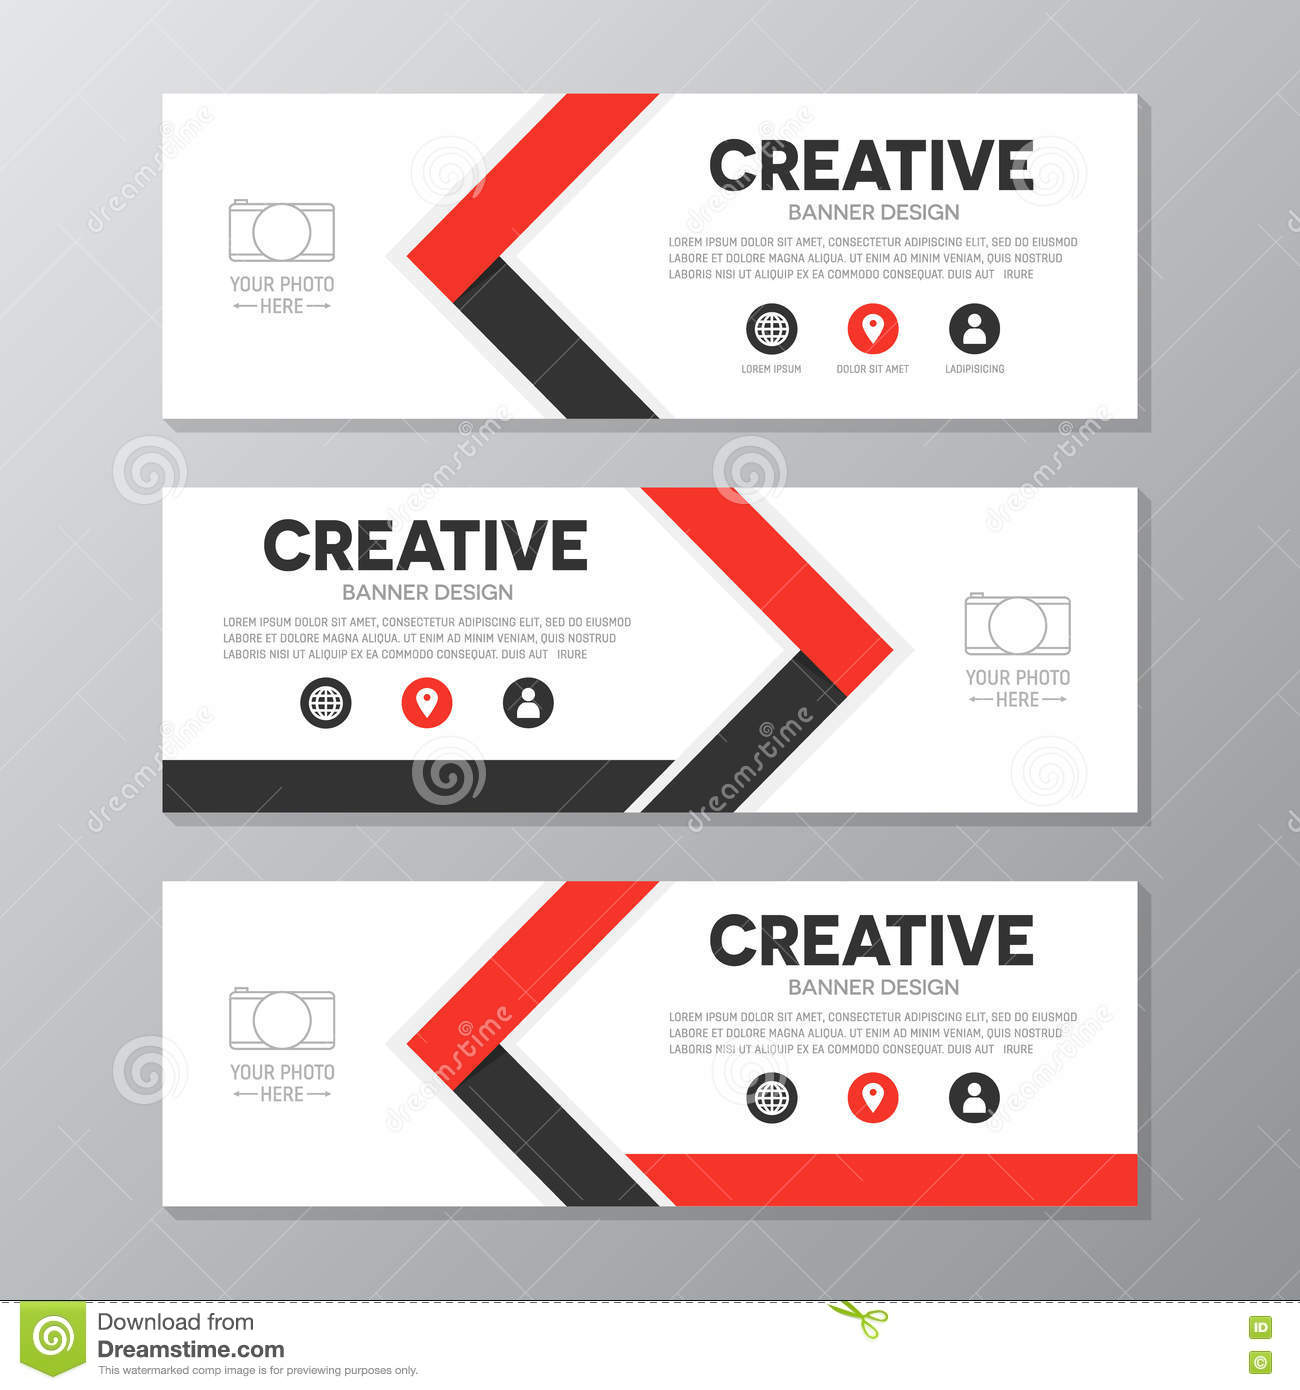 ad layout templates - Fieldstation.co